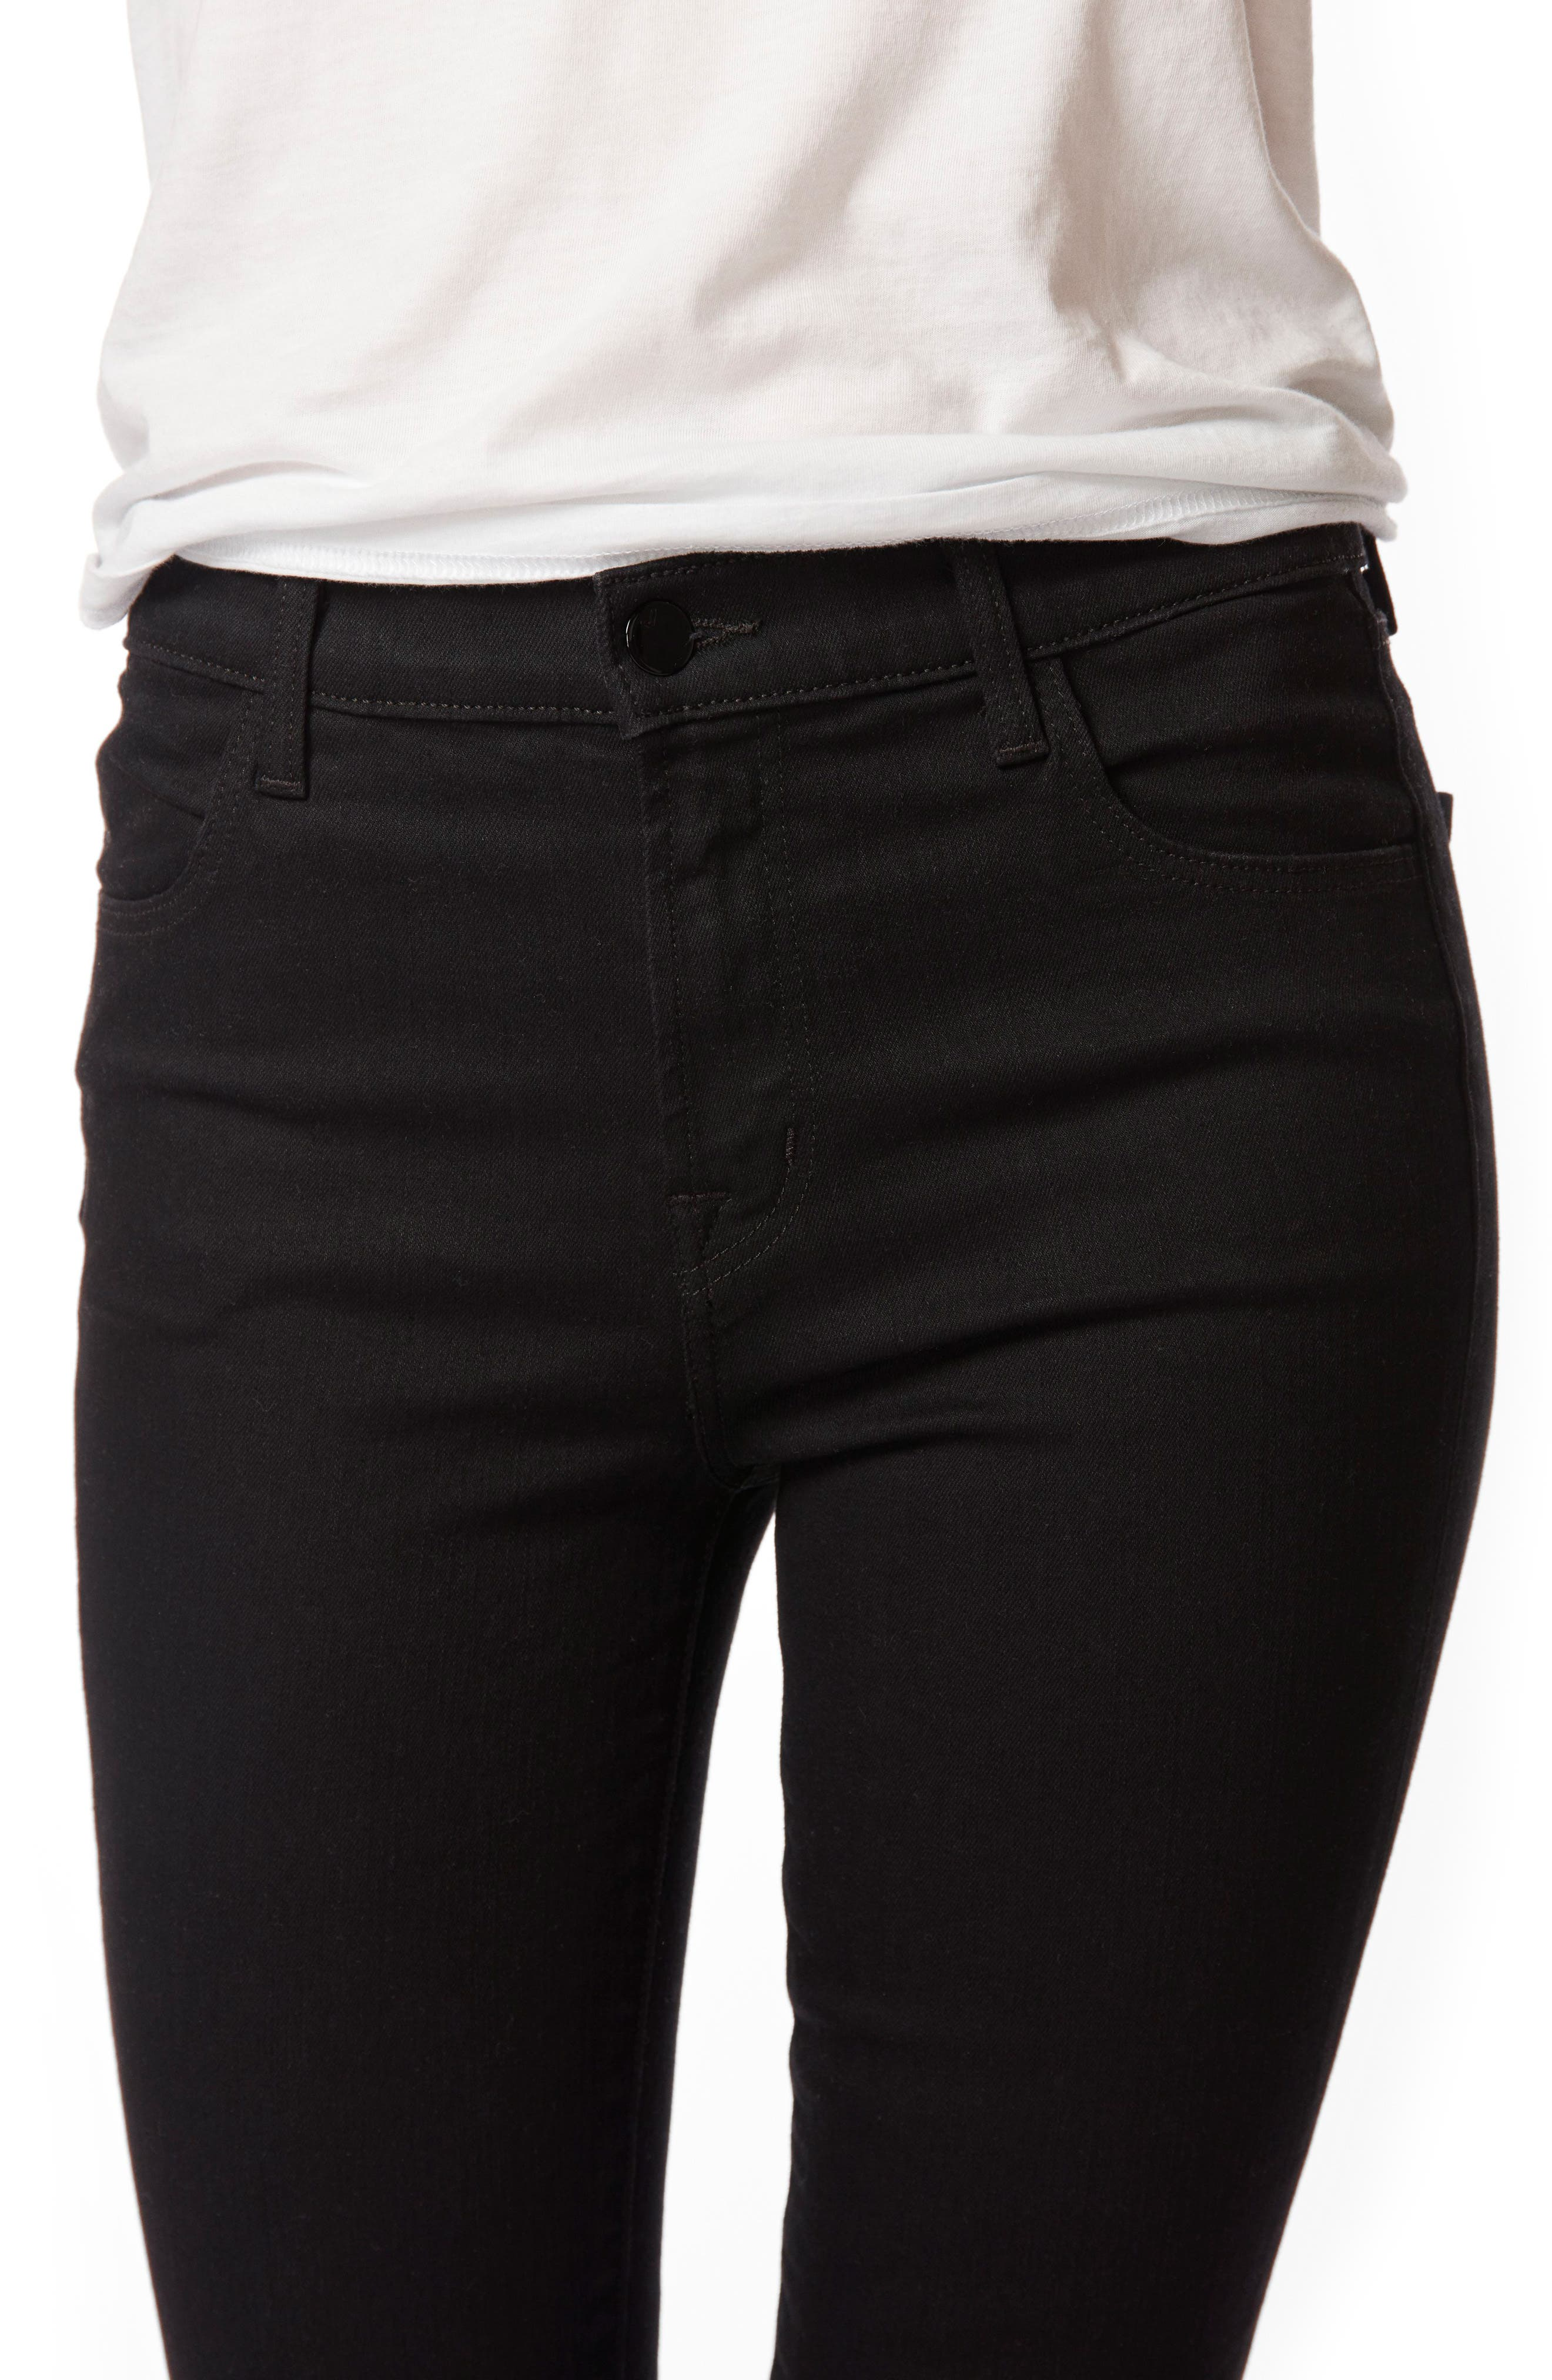 Alana High Waist Crop Skinny Jeans,                             Alternate thumbnail 5, color,